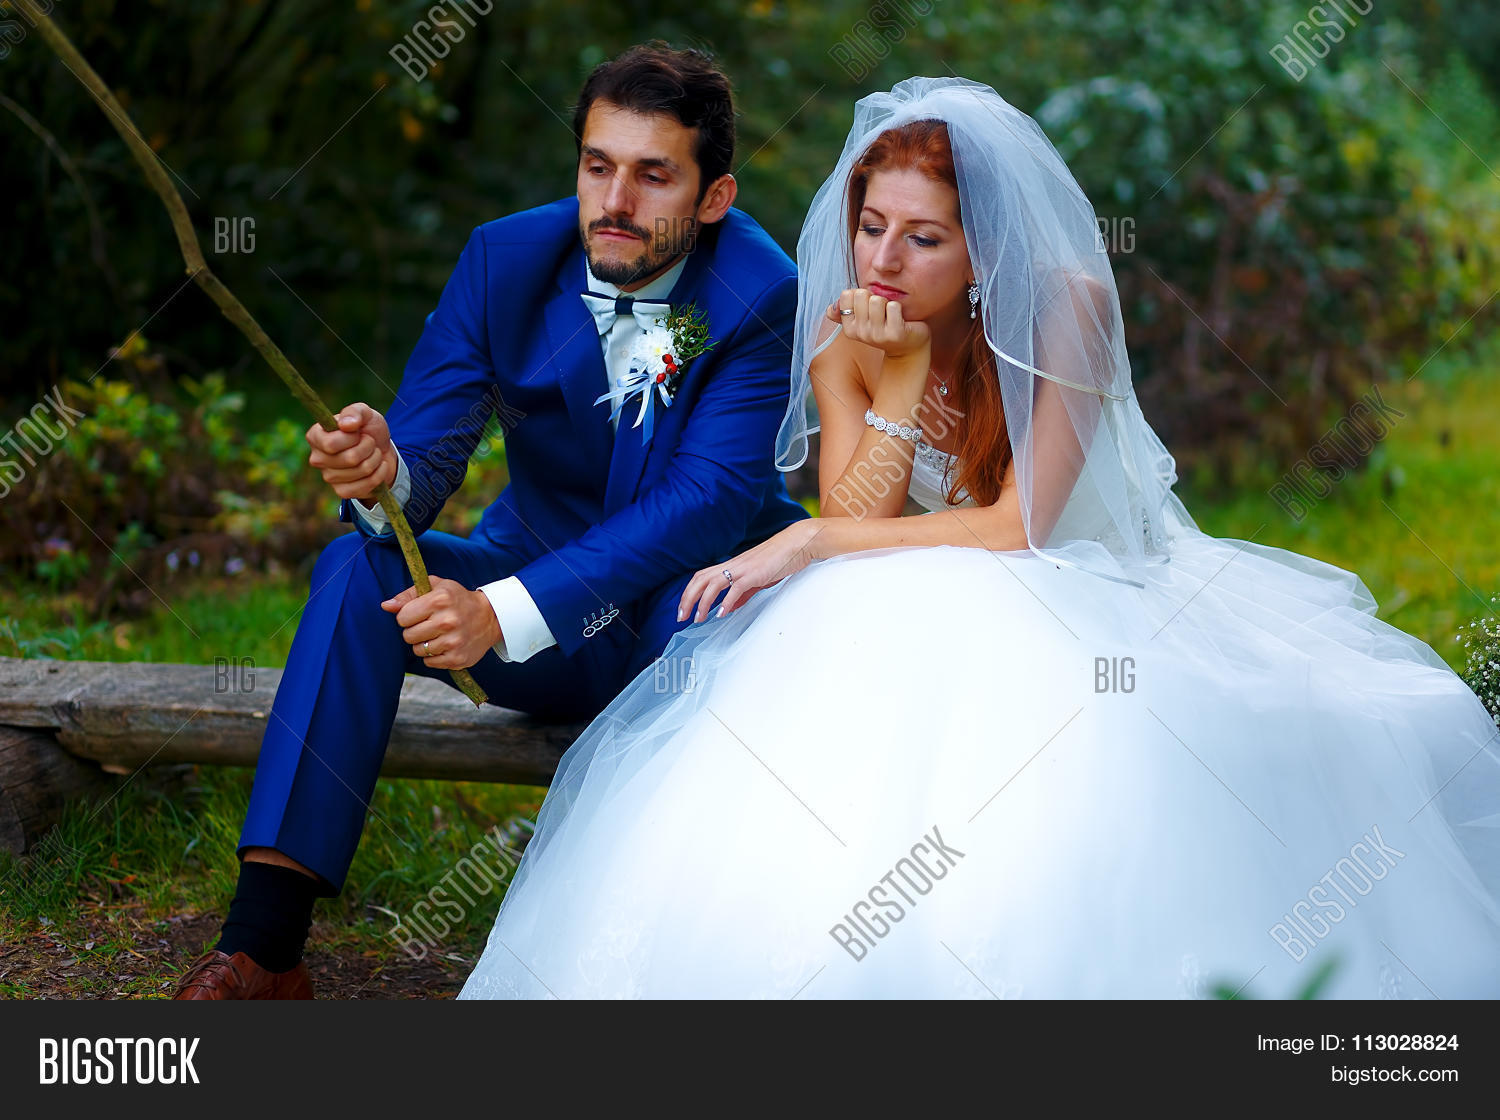 bride and groom fishing together - romantic wedding concept